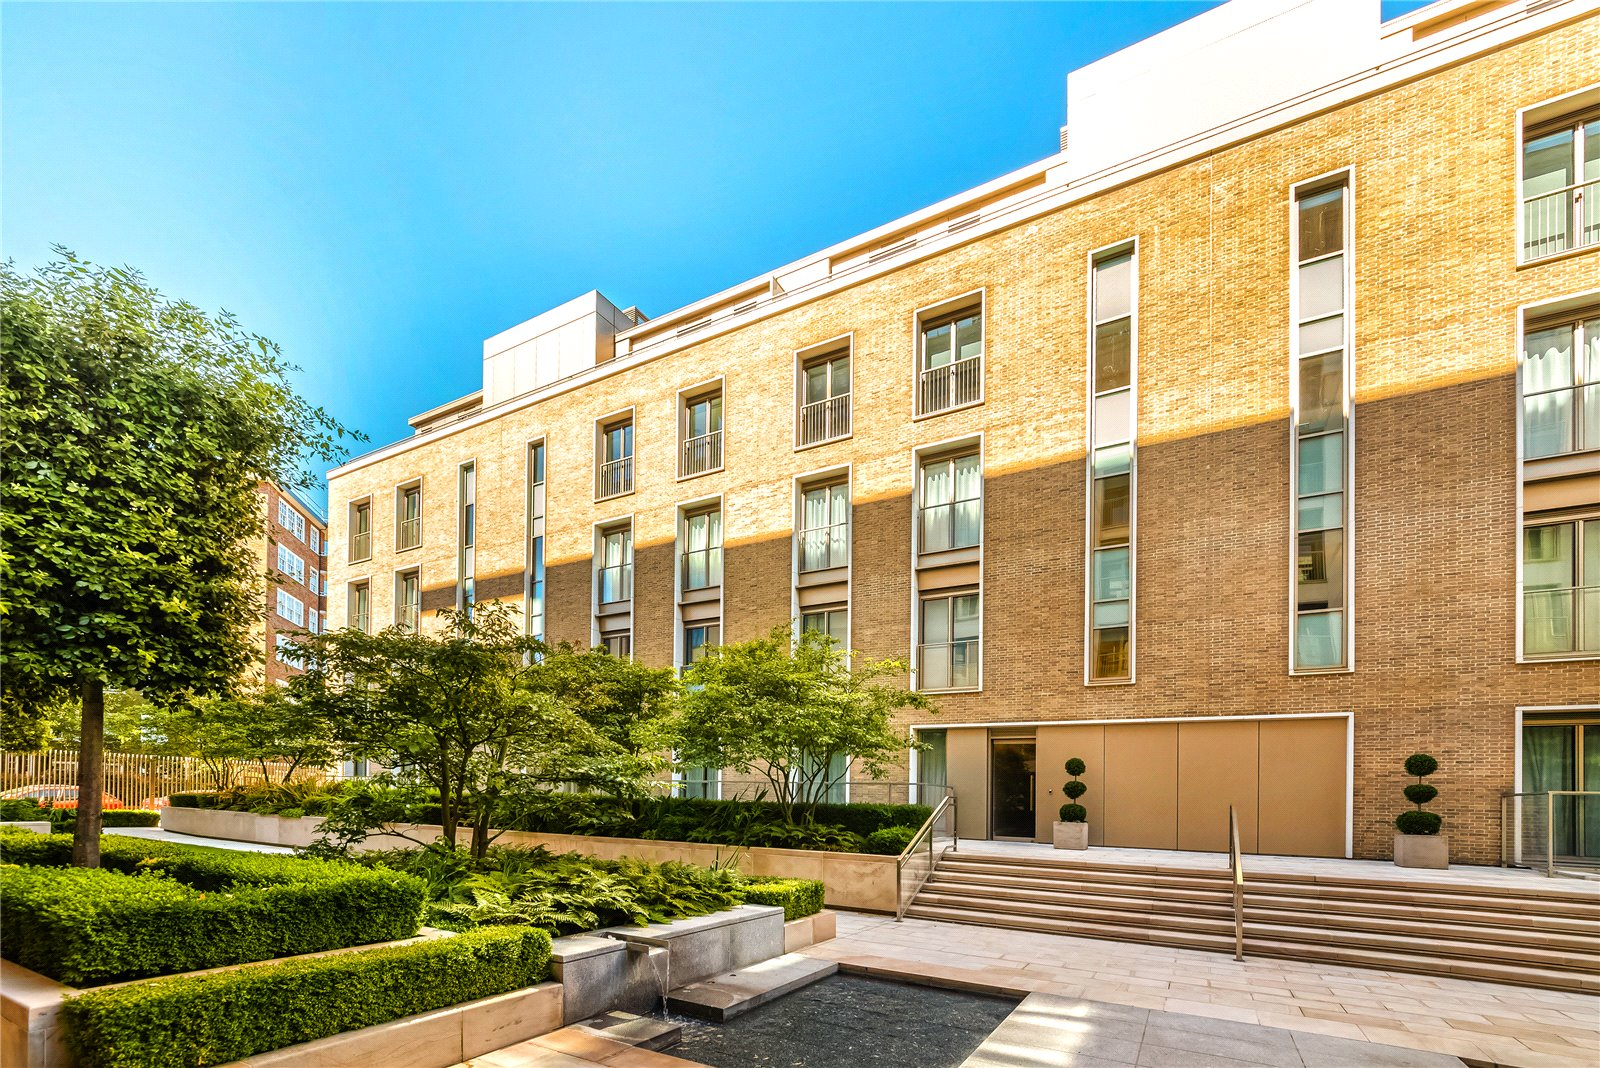 Apartment for Sale at Ebury Square, Belgravia, London, SW1W Ebury Square, Belgravia, London, SW1W